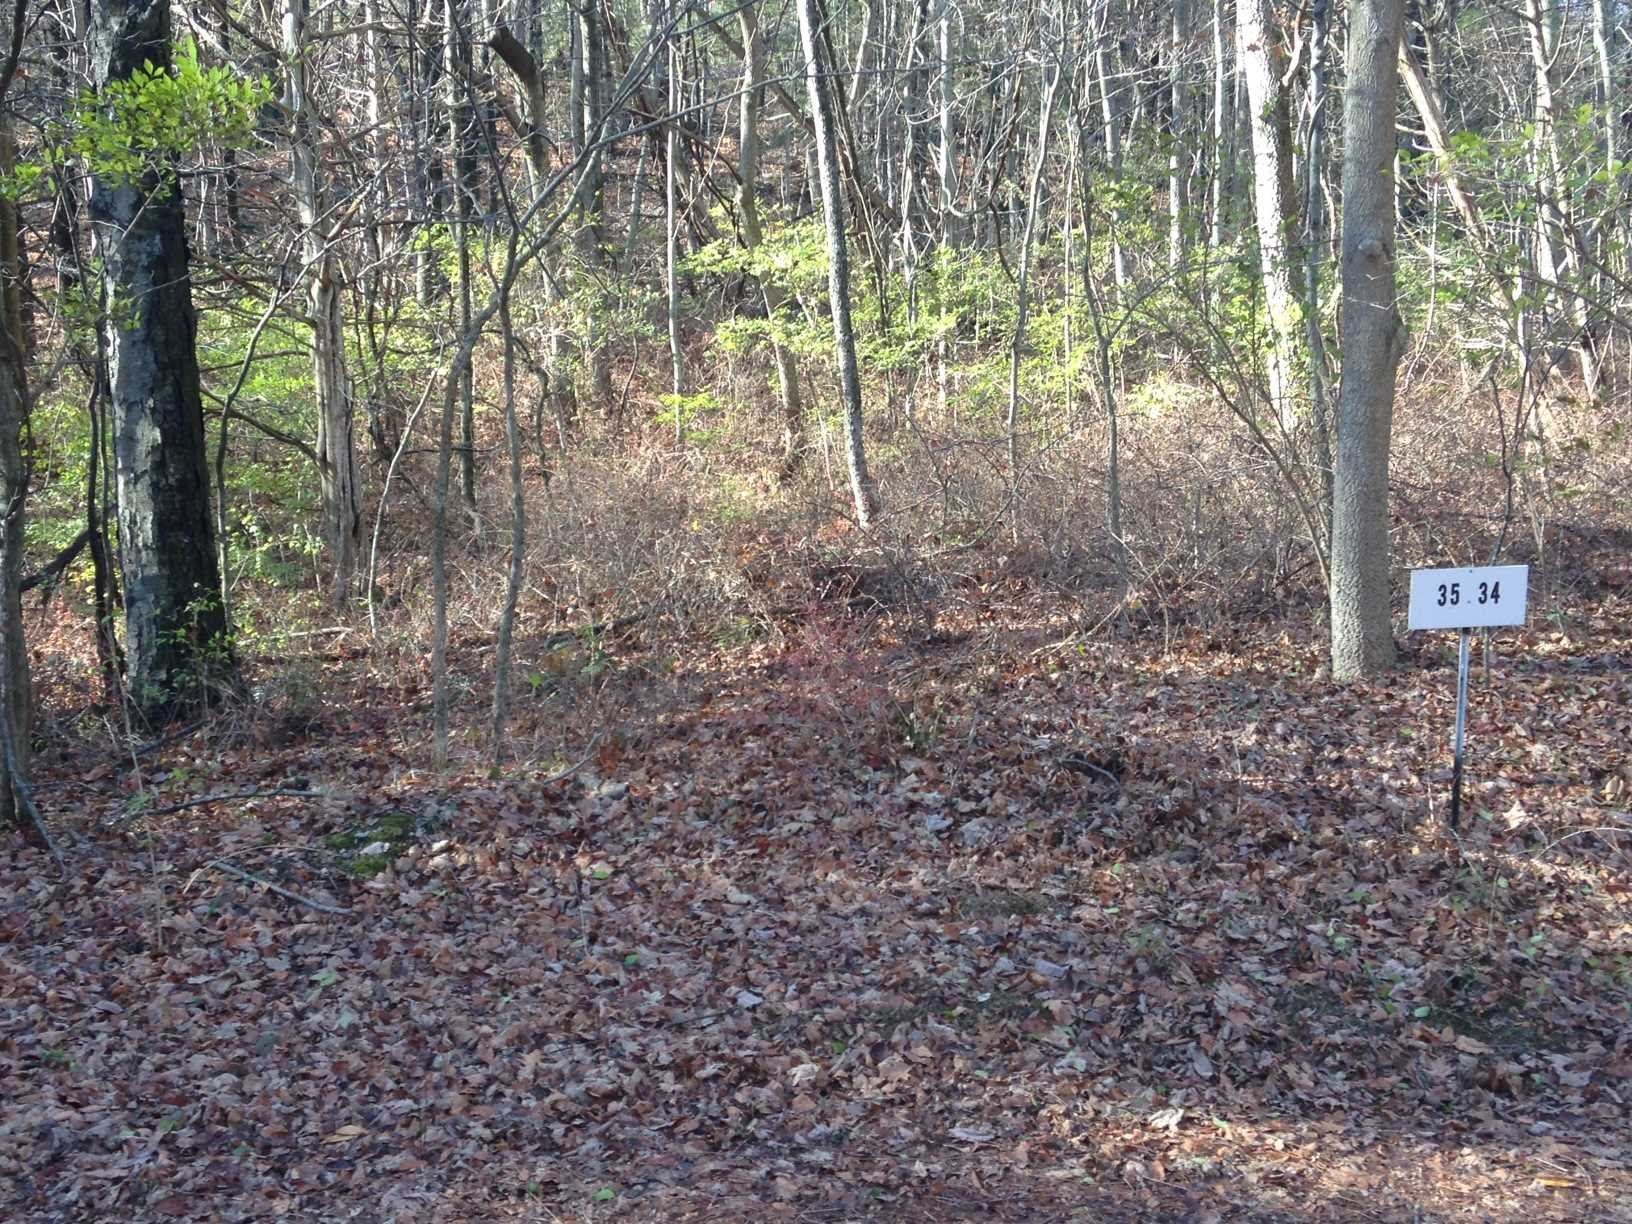 Land for Sale at LOT #35 WOODLAND Road LOT #35 WOODLAND Road Amenia, New York 12501 United States